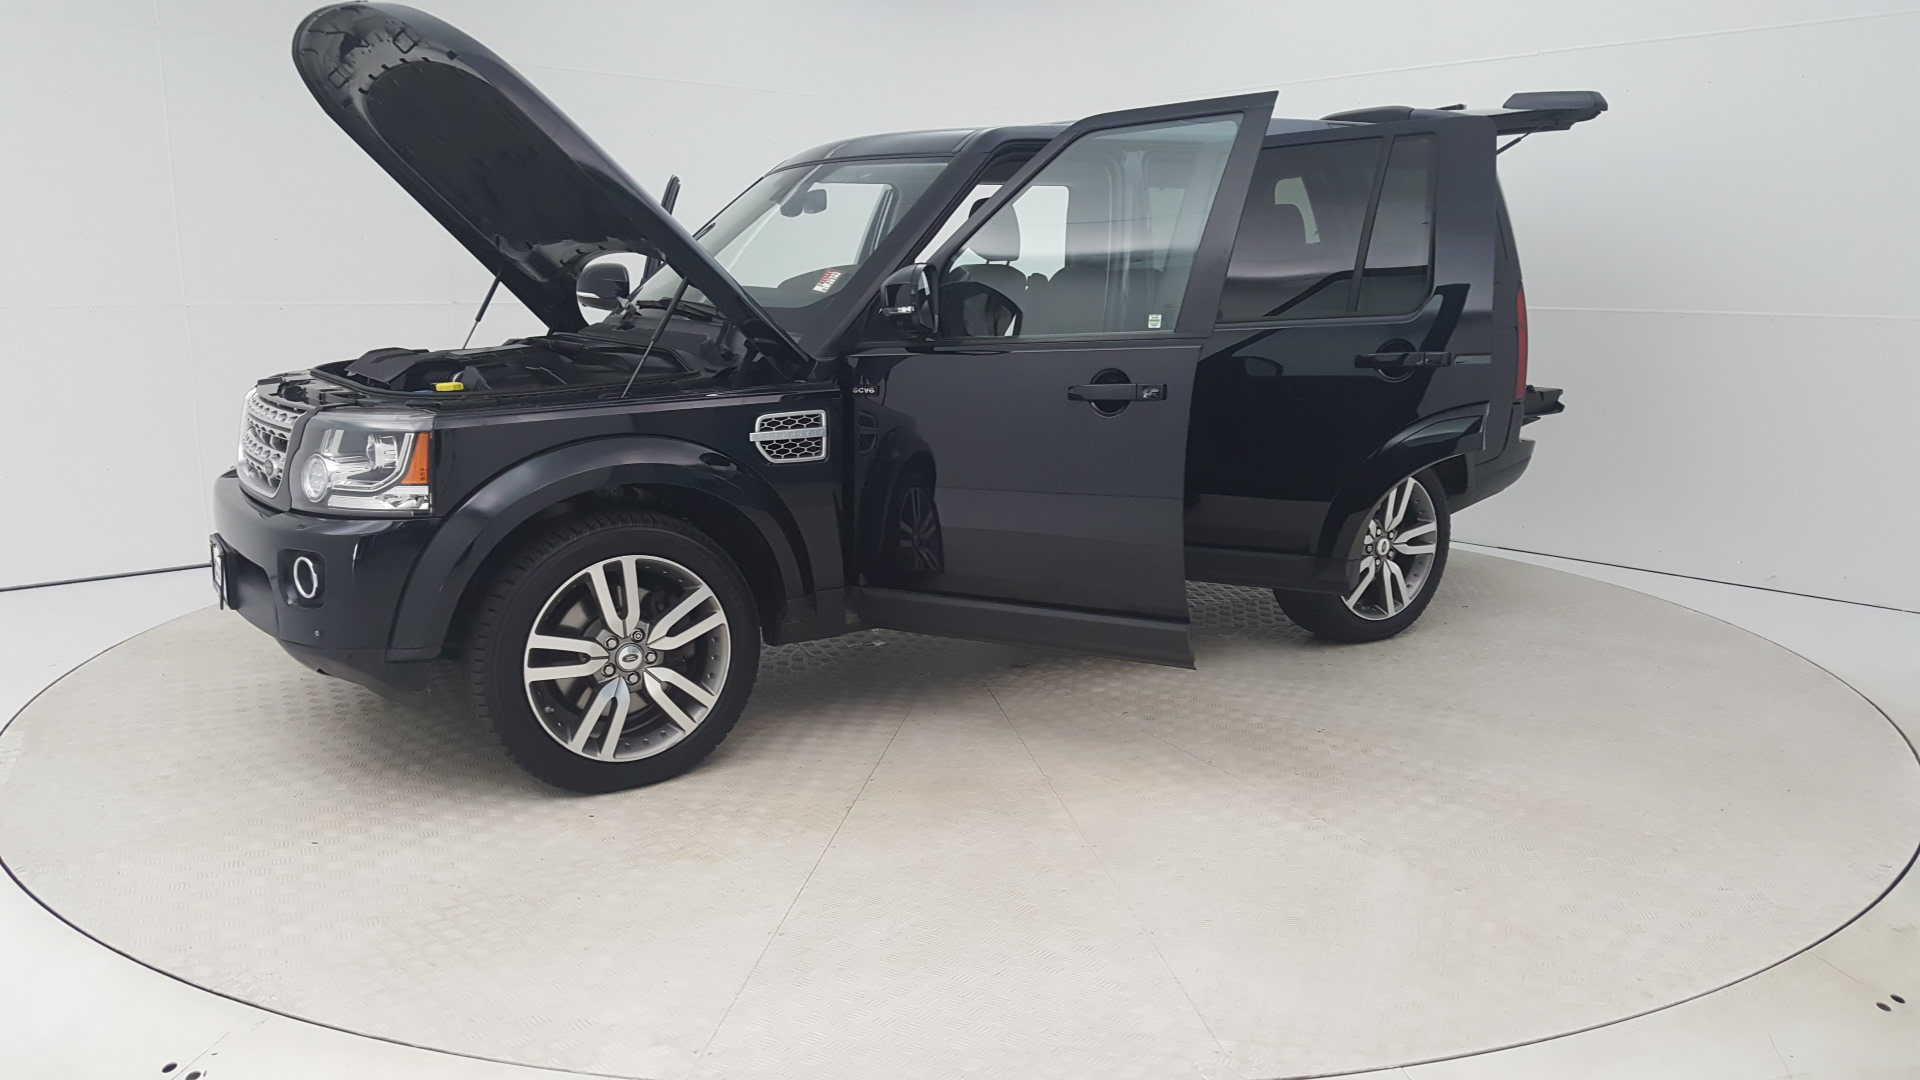 Pre Owned 2014 Land Rover LR4 4WD 4dr LUX Sport Utility in Baltimore